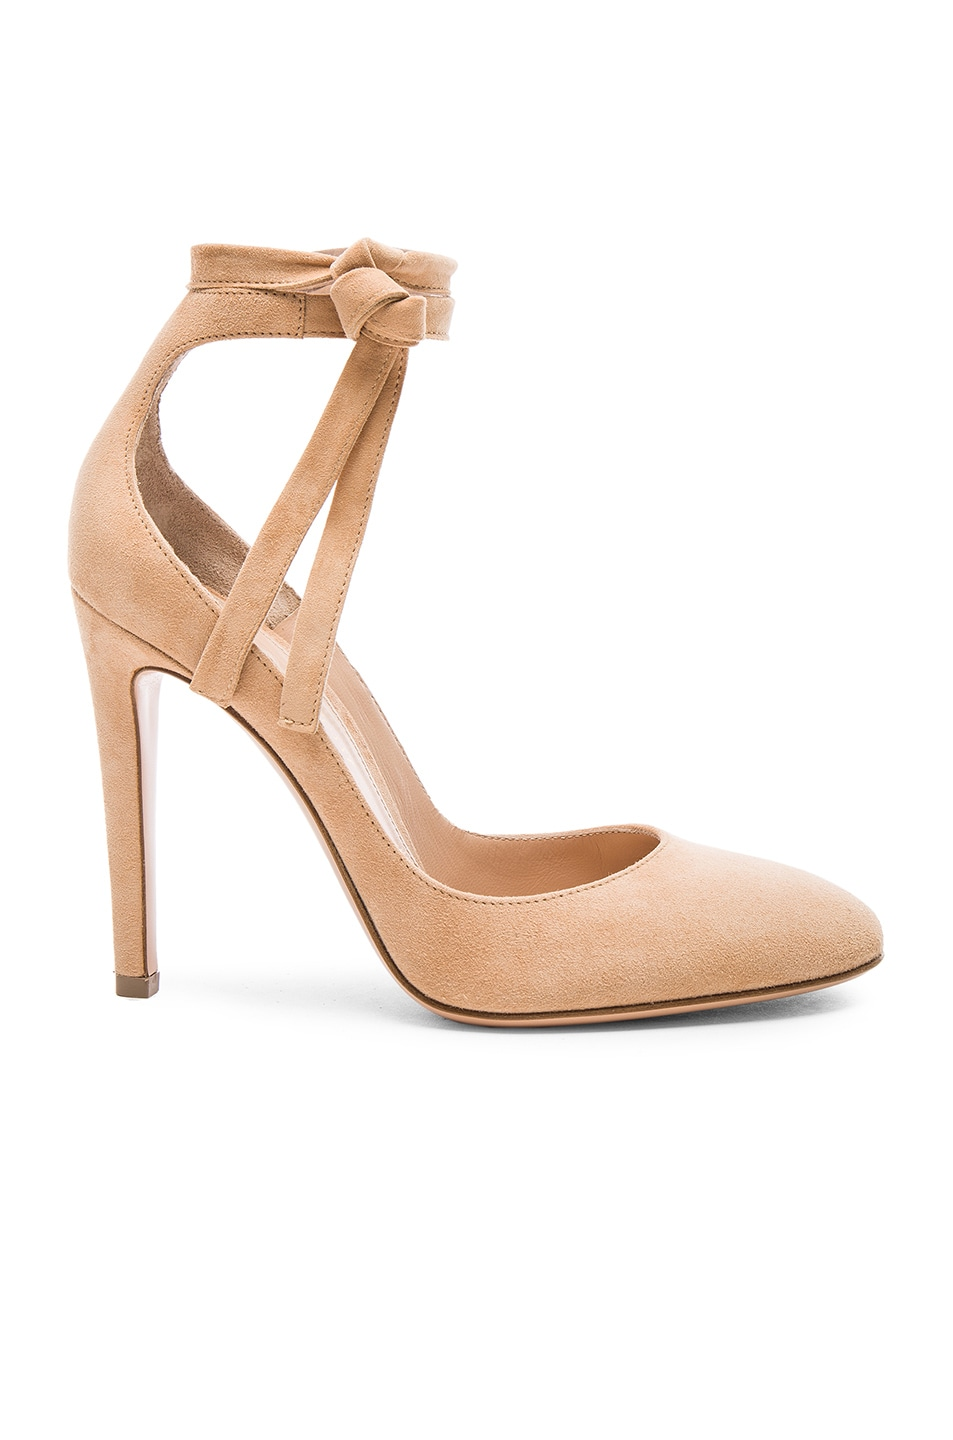 Image 1 of Gianvito Rossi Suede Carla Pumps in Powder